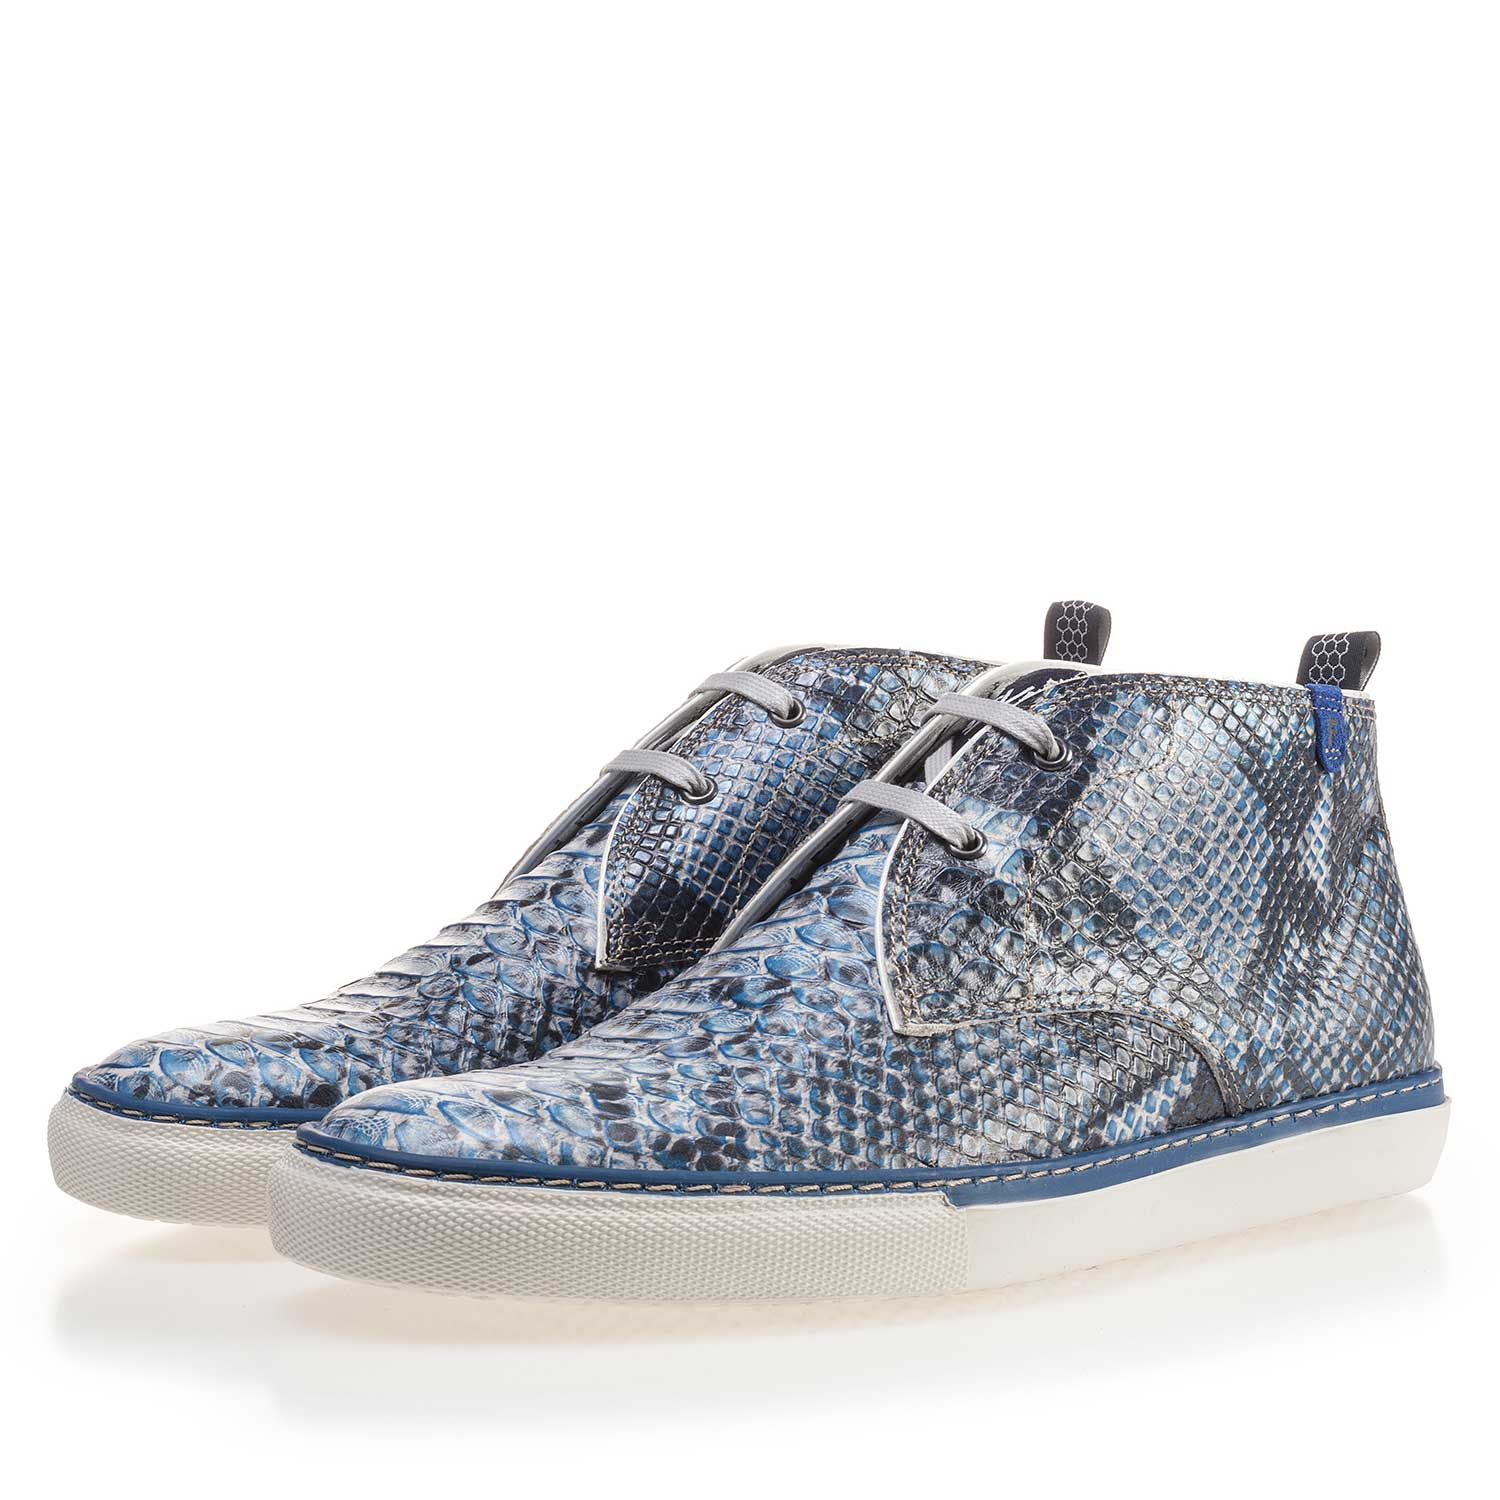 10024/02 - Blue calf's leather lace boot with a snake pattern